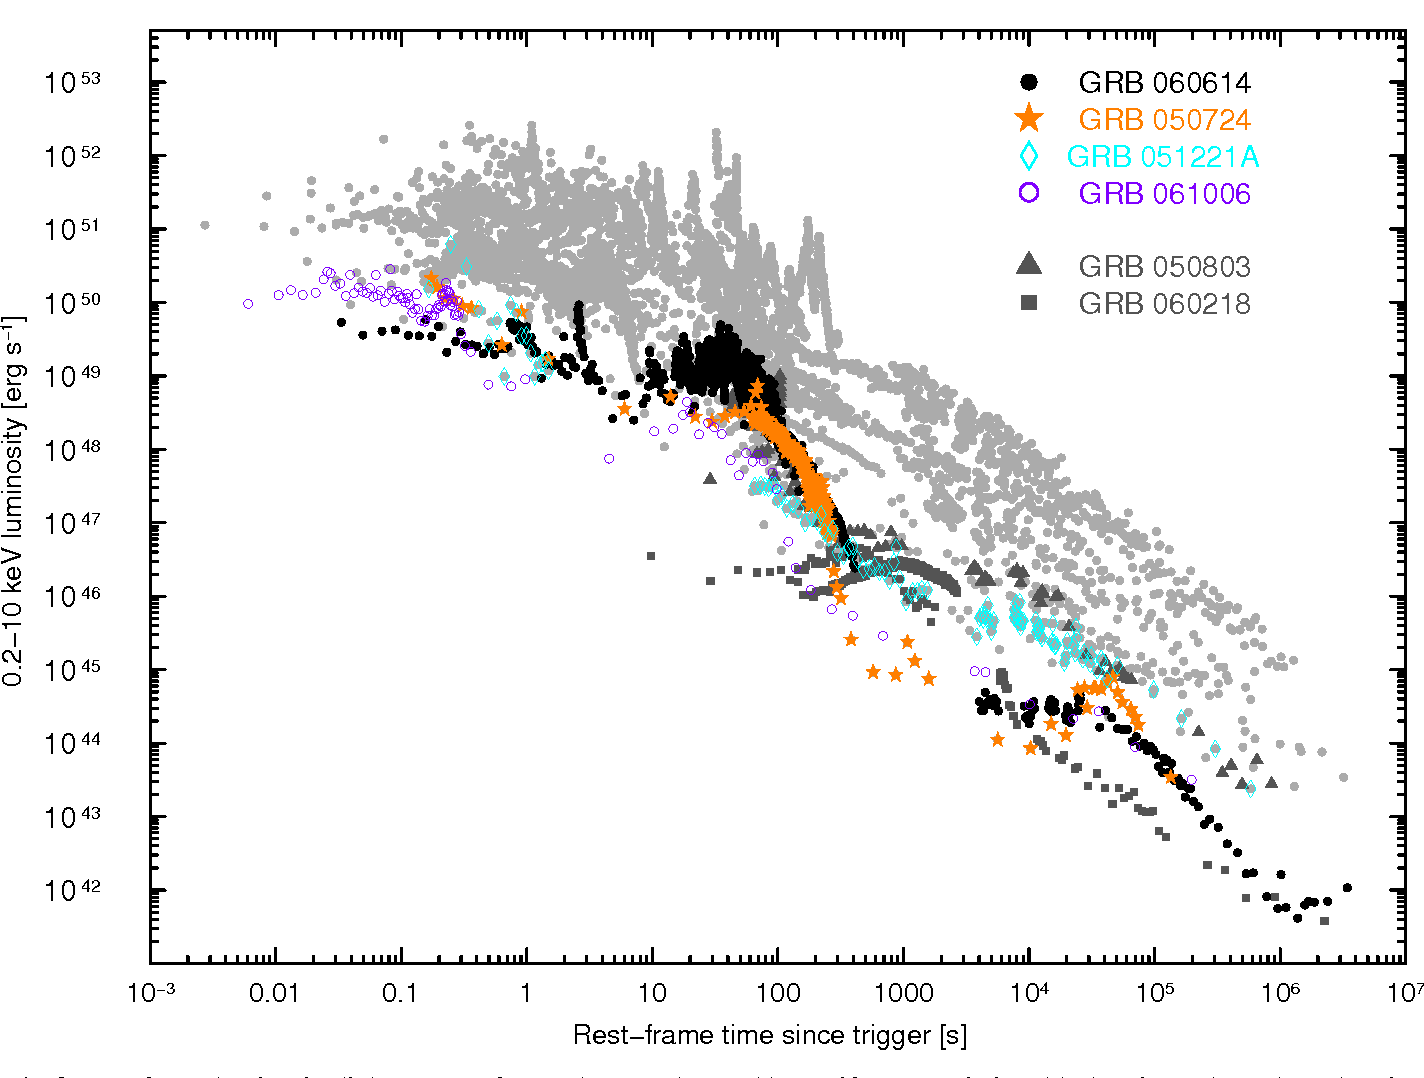 Fig. 9. Rest-frame luminosity light curves of several GRBs detected by Swift: GRB 060614 (black points), the 3 short-duration GRBs with secure redshift (GRB 050724, GRB 051221A, and GRB 061006) and 37 long bursts with known redshift (light and dark grey curves). The only two long GRBs with redshift z< 0.5 are evidenced (dark grey curves). Note that the sample contains other 5 long bursts with 0.5 < z < 1. Each light curve consists of i) the BAT light curve of the prompt emission extracted in the 15−150 keV energy band, extrapolated to flux in the 0.2−10 keV energy band using the best fit parameters of the BAT spectrum and then converted into 0.2−10 keV luminosity using the appropriate k-correction; ii) the XRT light curves, converted to 0.2−10 keV luminosity with the appropriate k-correction required for the best fit model of the XRT spectra. See Mangano et al. (2007b) for further details.